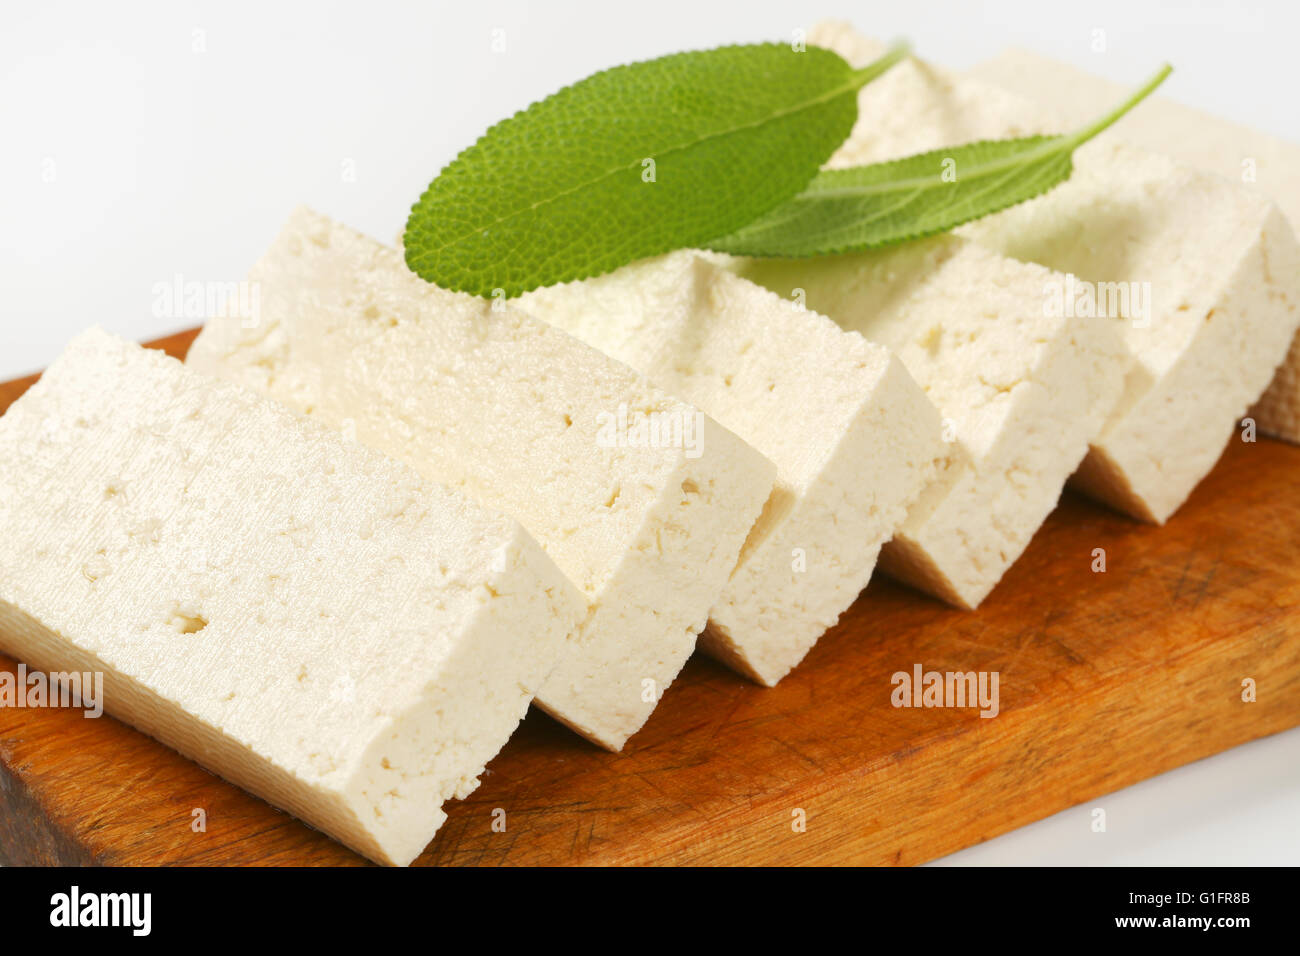 Tranches de tofu frais on cutting board Photo Stock